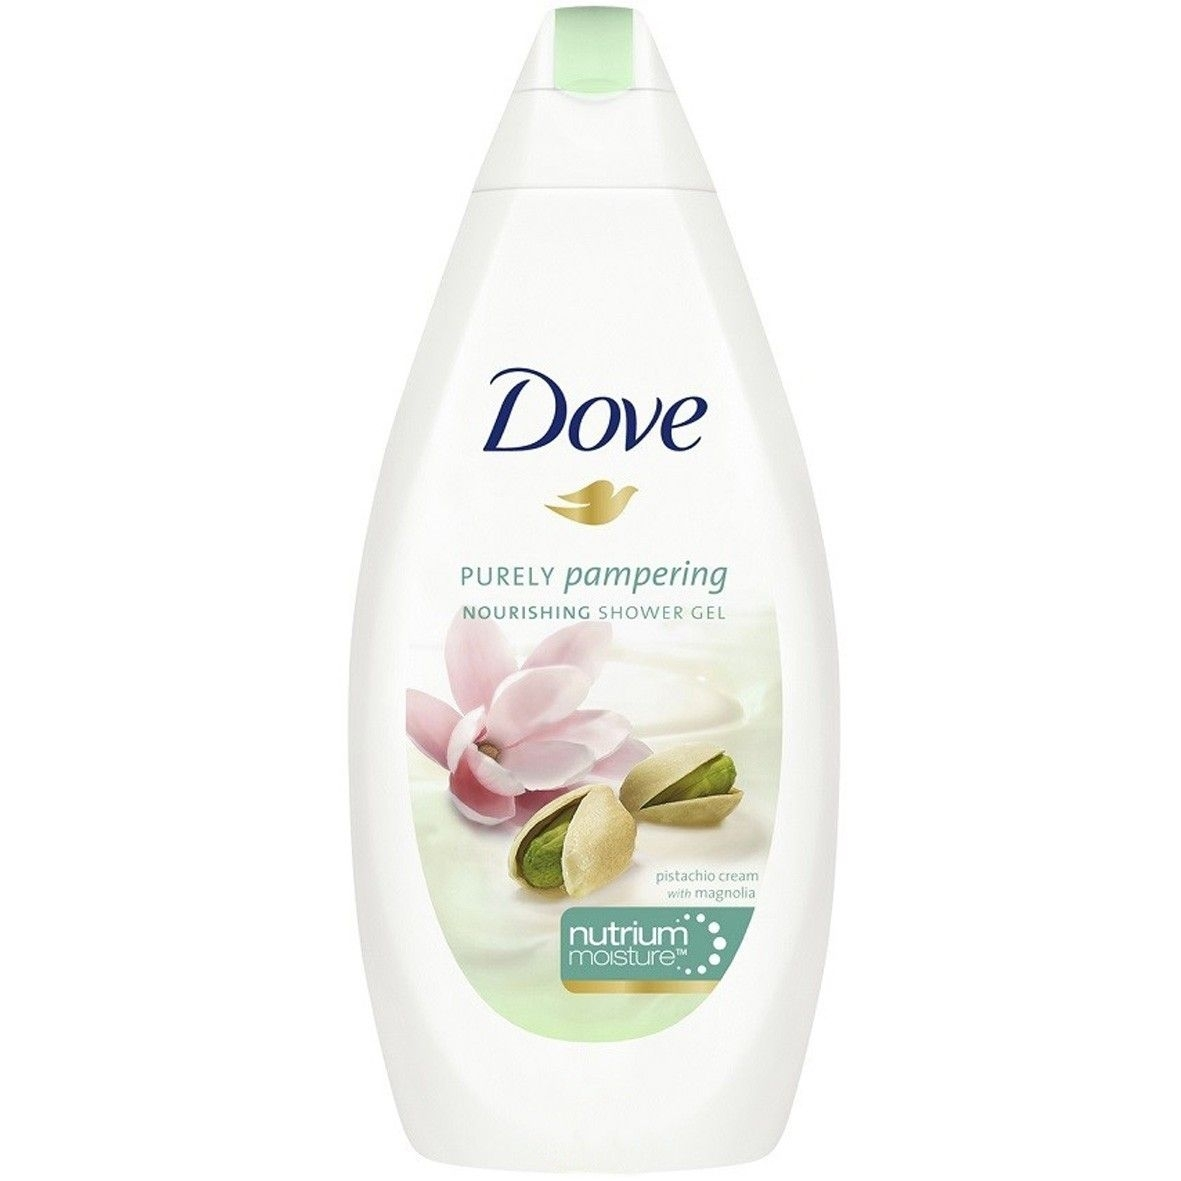 Dove Dove Glowing Body Wash Revitalizes And Refreshes Skin Mango Butter And Almond Butter Sulfate Free Body Wash 22 Fl Oz Pack Of 4 From Amazon Daily Mail